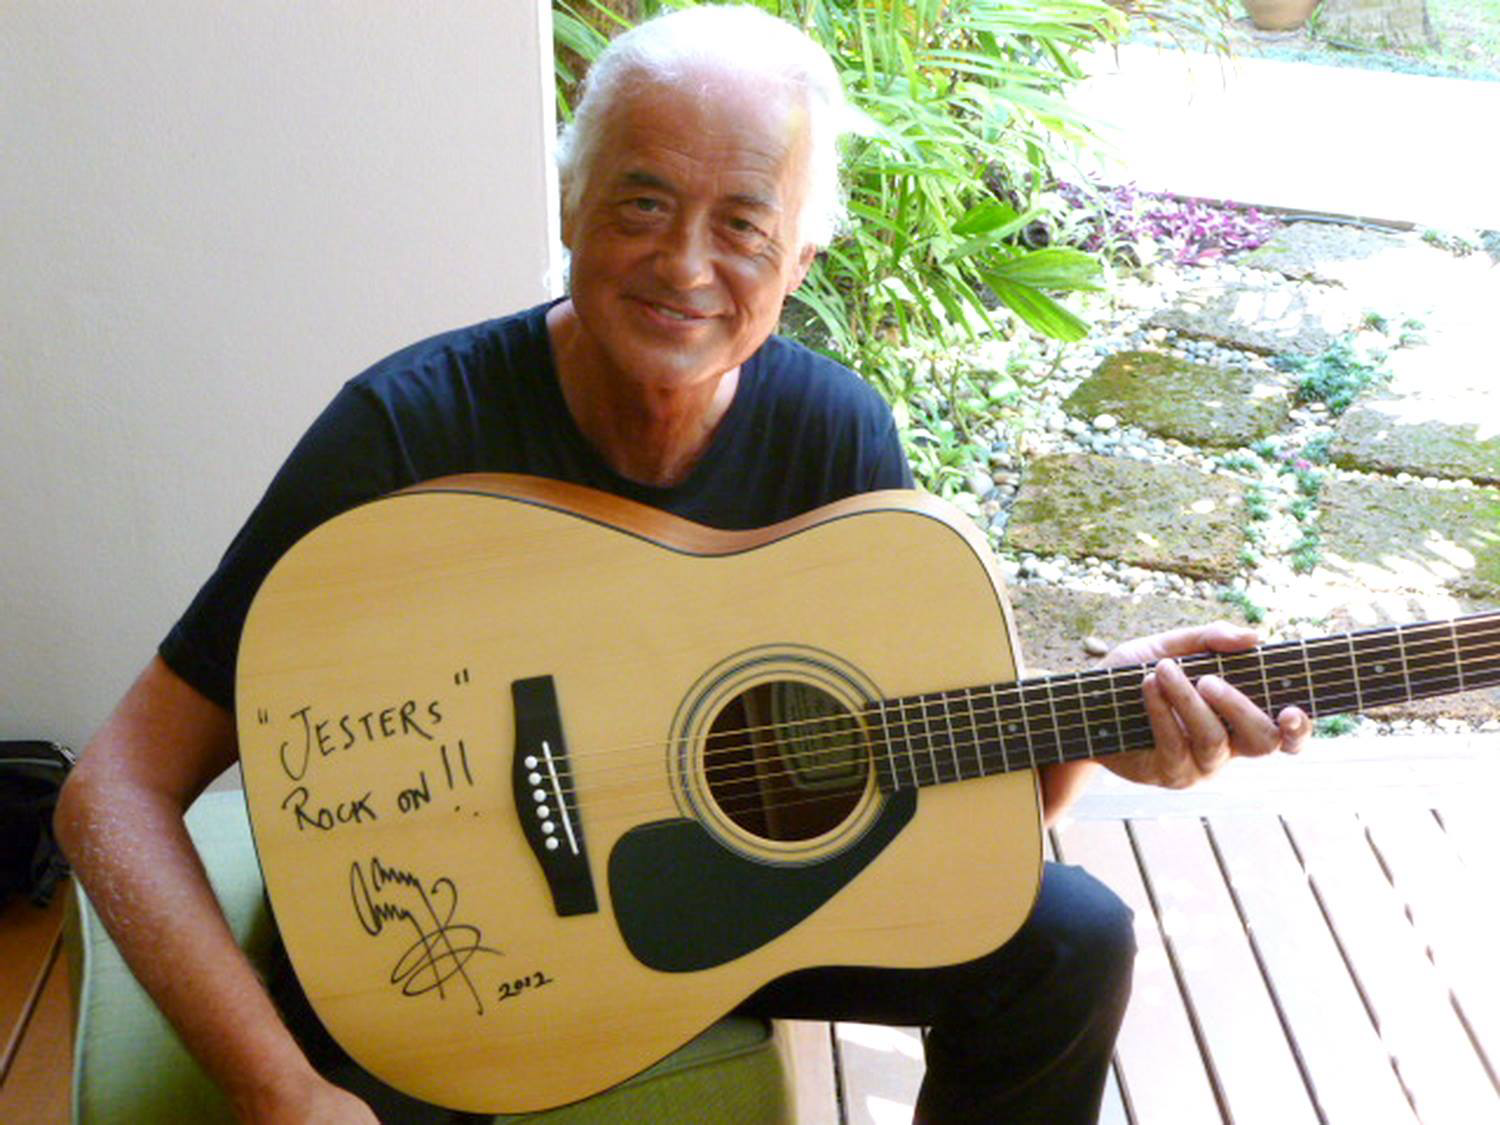 Jimmy Page Has Signed A Yamaha Acoustic Guitar For Auction In Aid Of The Jesters Care For Kids Charity Best Guitar Players Yamaha Guitar Guitar